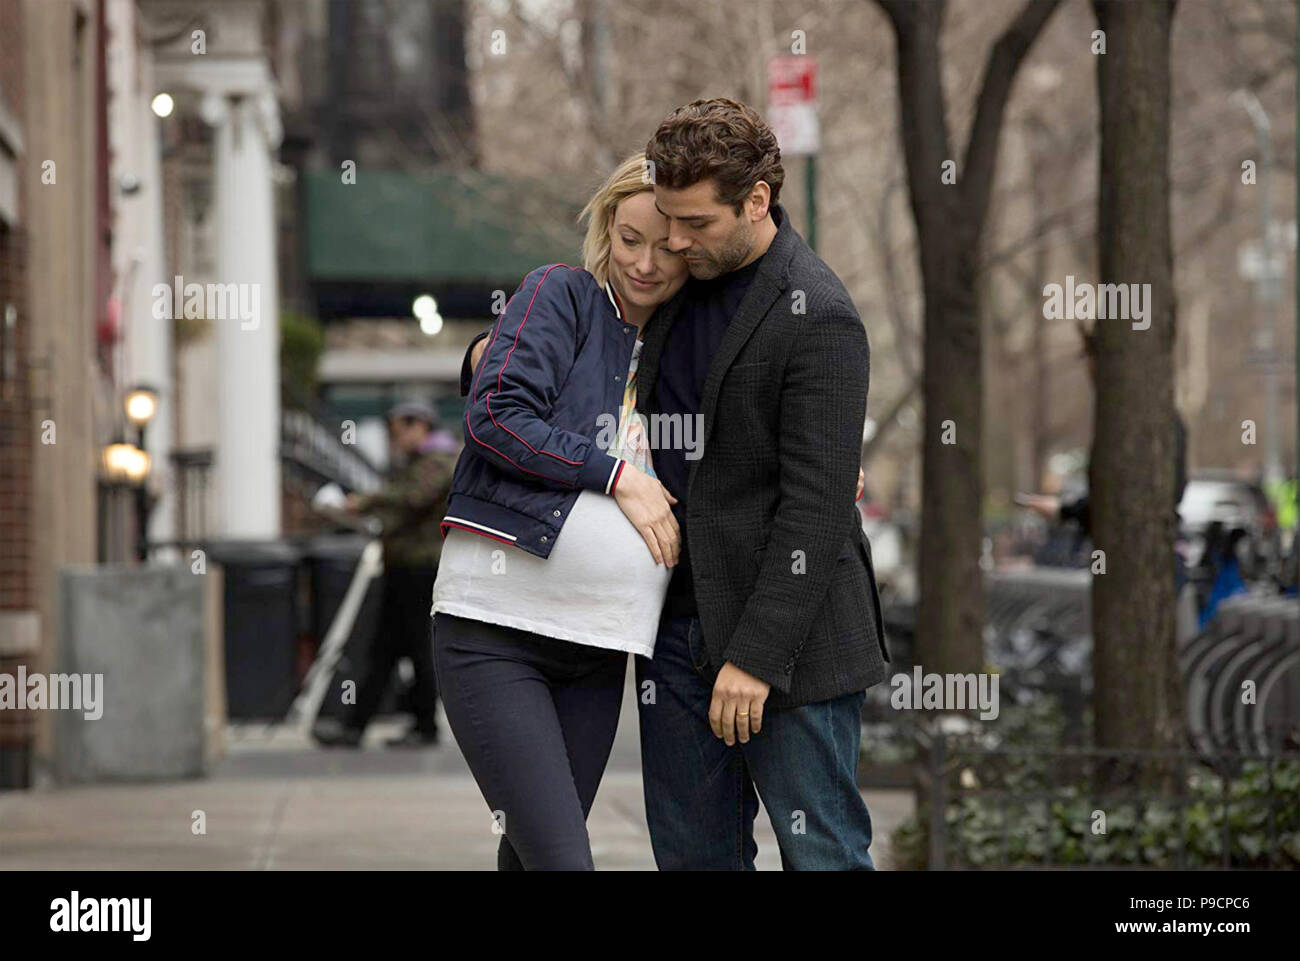 LIFE ITSELF 2018 FilmNation Entertainment production with Olivia Wilde and Oscar Isaac - Stock Image